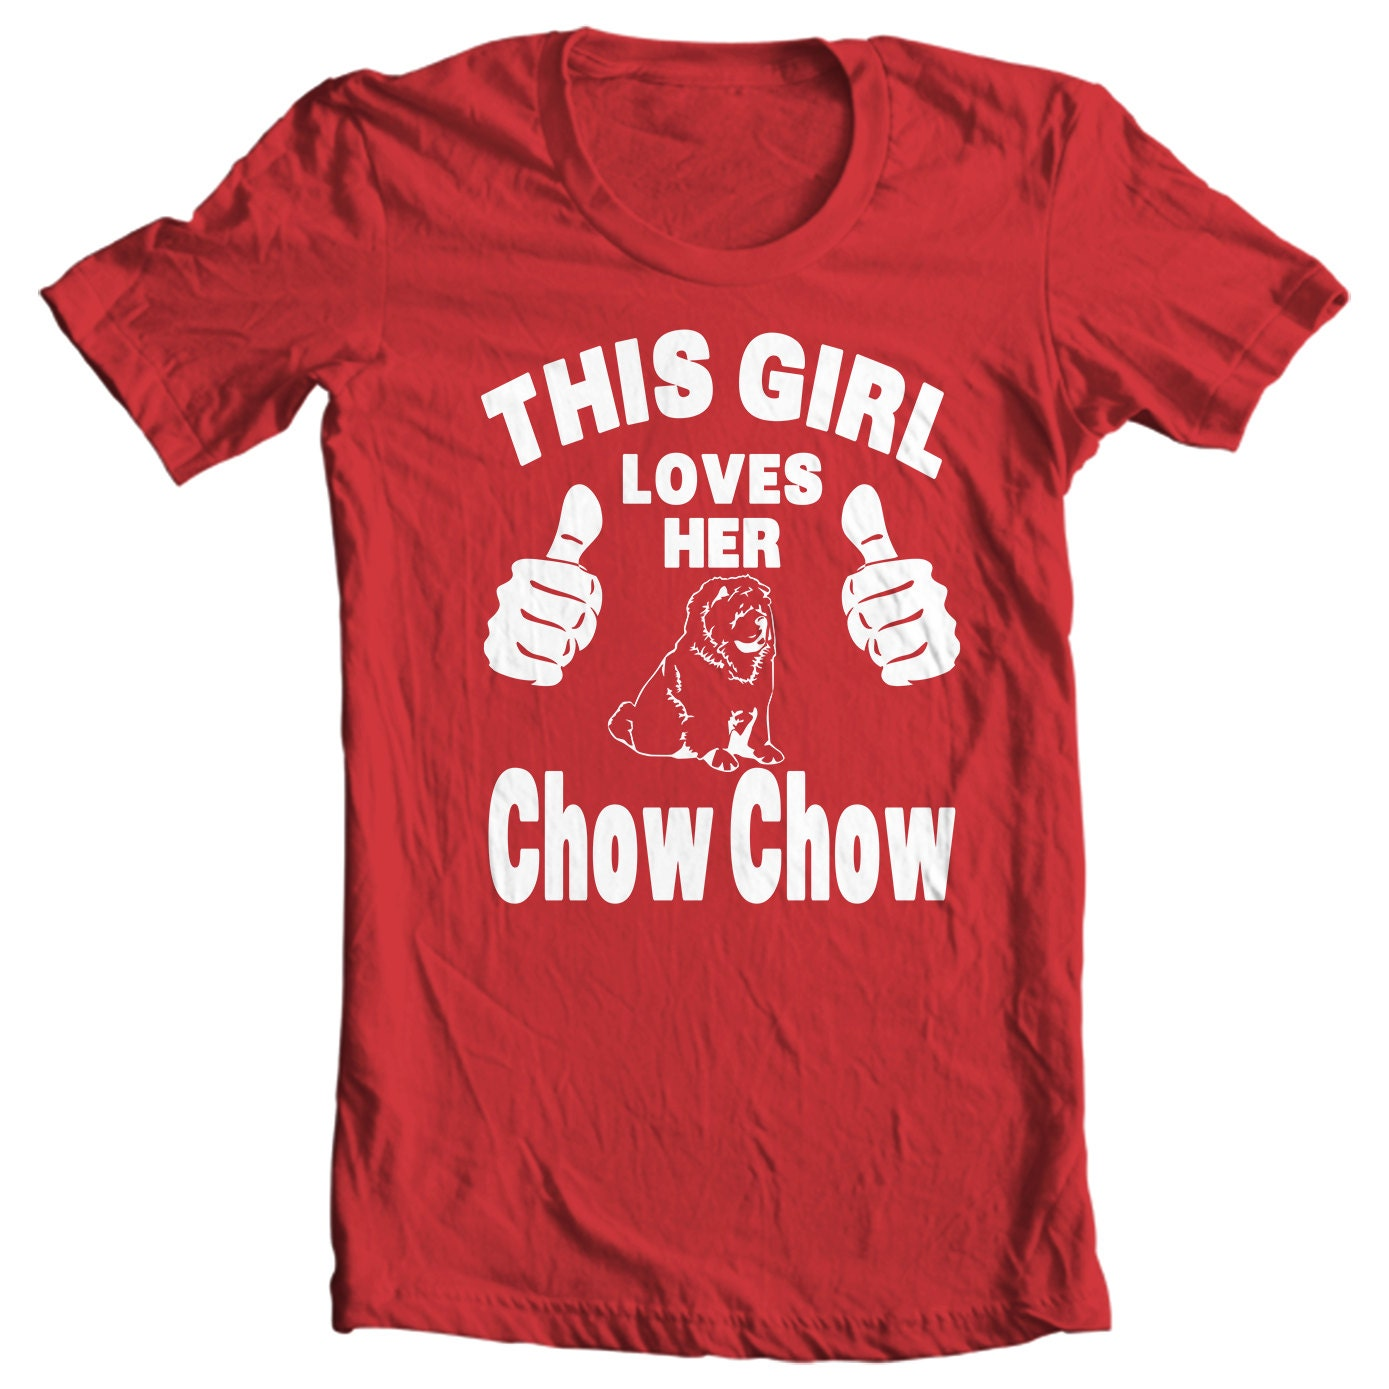 Chow Chow T-shirt - This Girl Loves Her Chow Chow - My Dog Chow Chow T-shirt